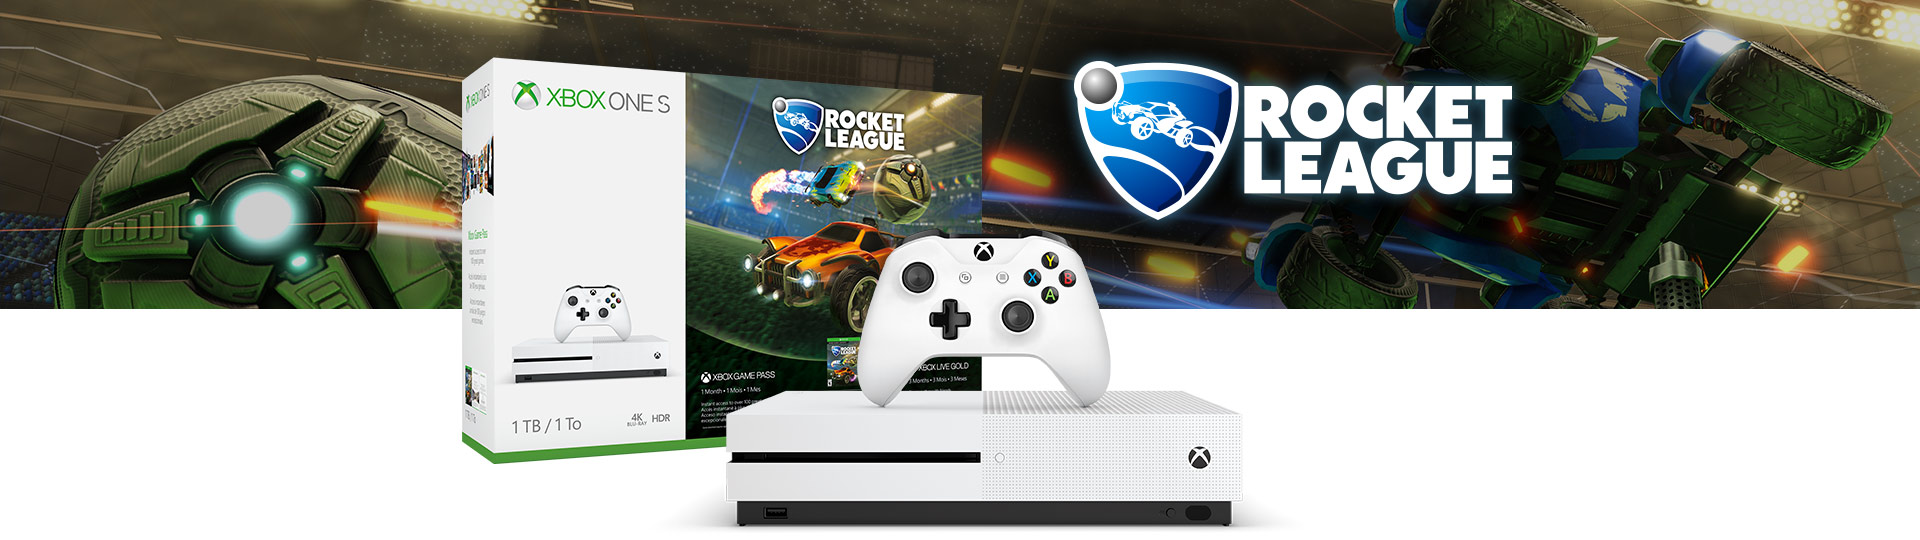 Xbox One S Rocket League Blast-Off Bundle 1 Terabyte